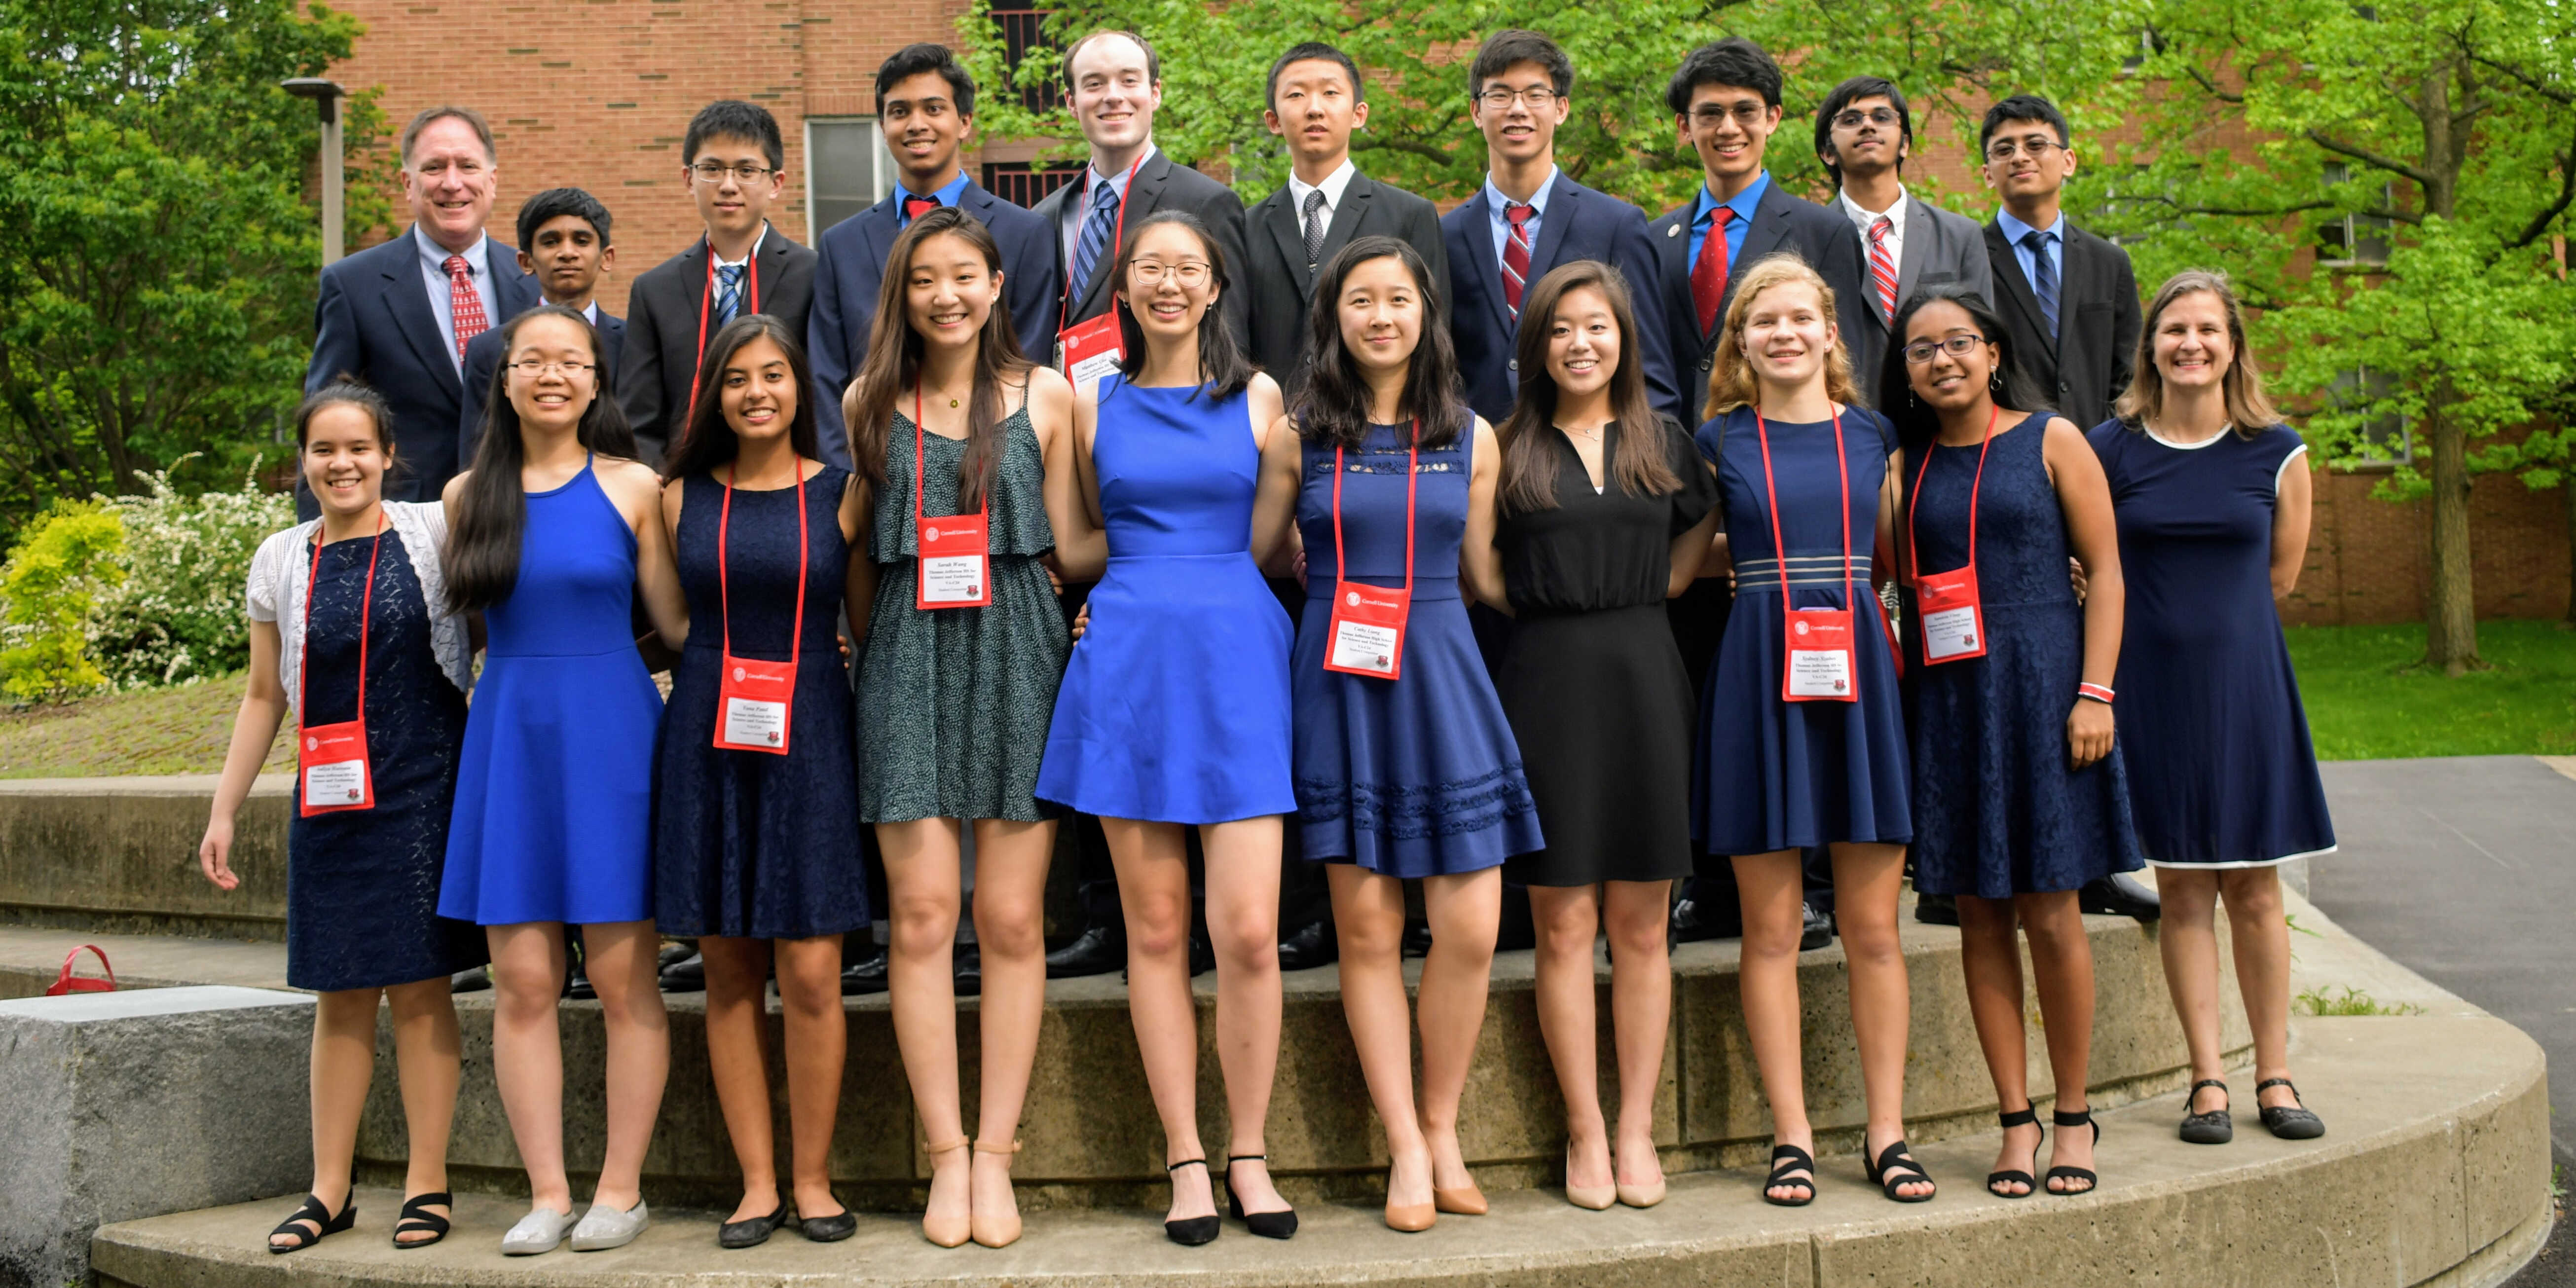 Our 2019 states team at the Science Olympiad National Tournament